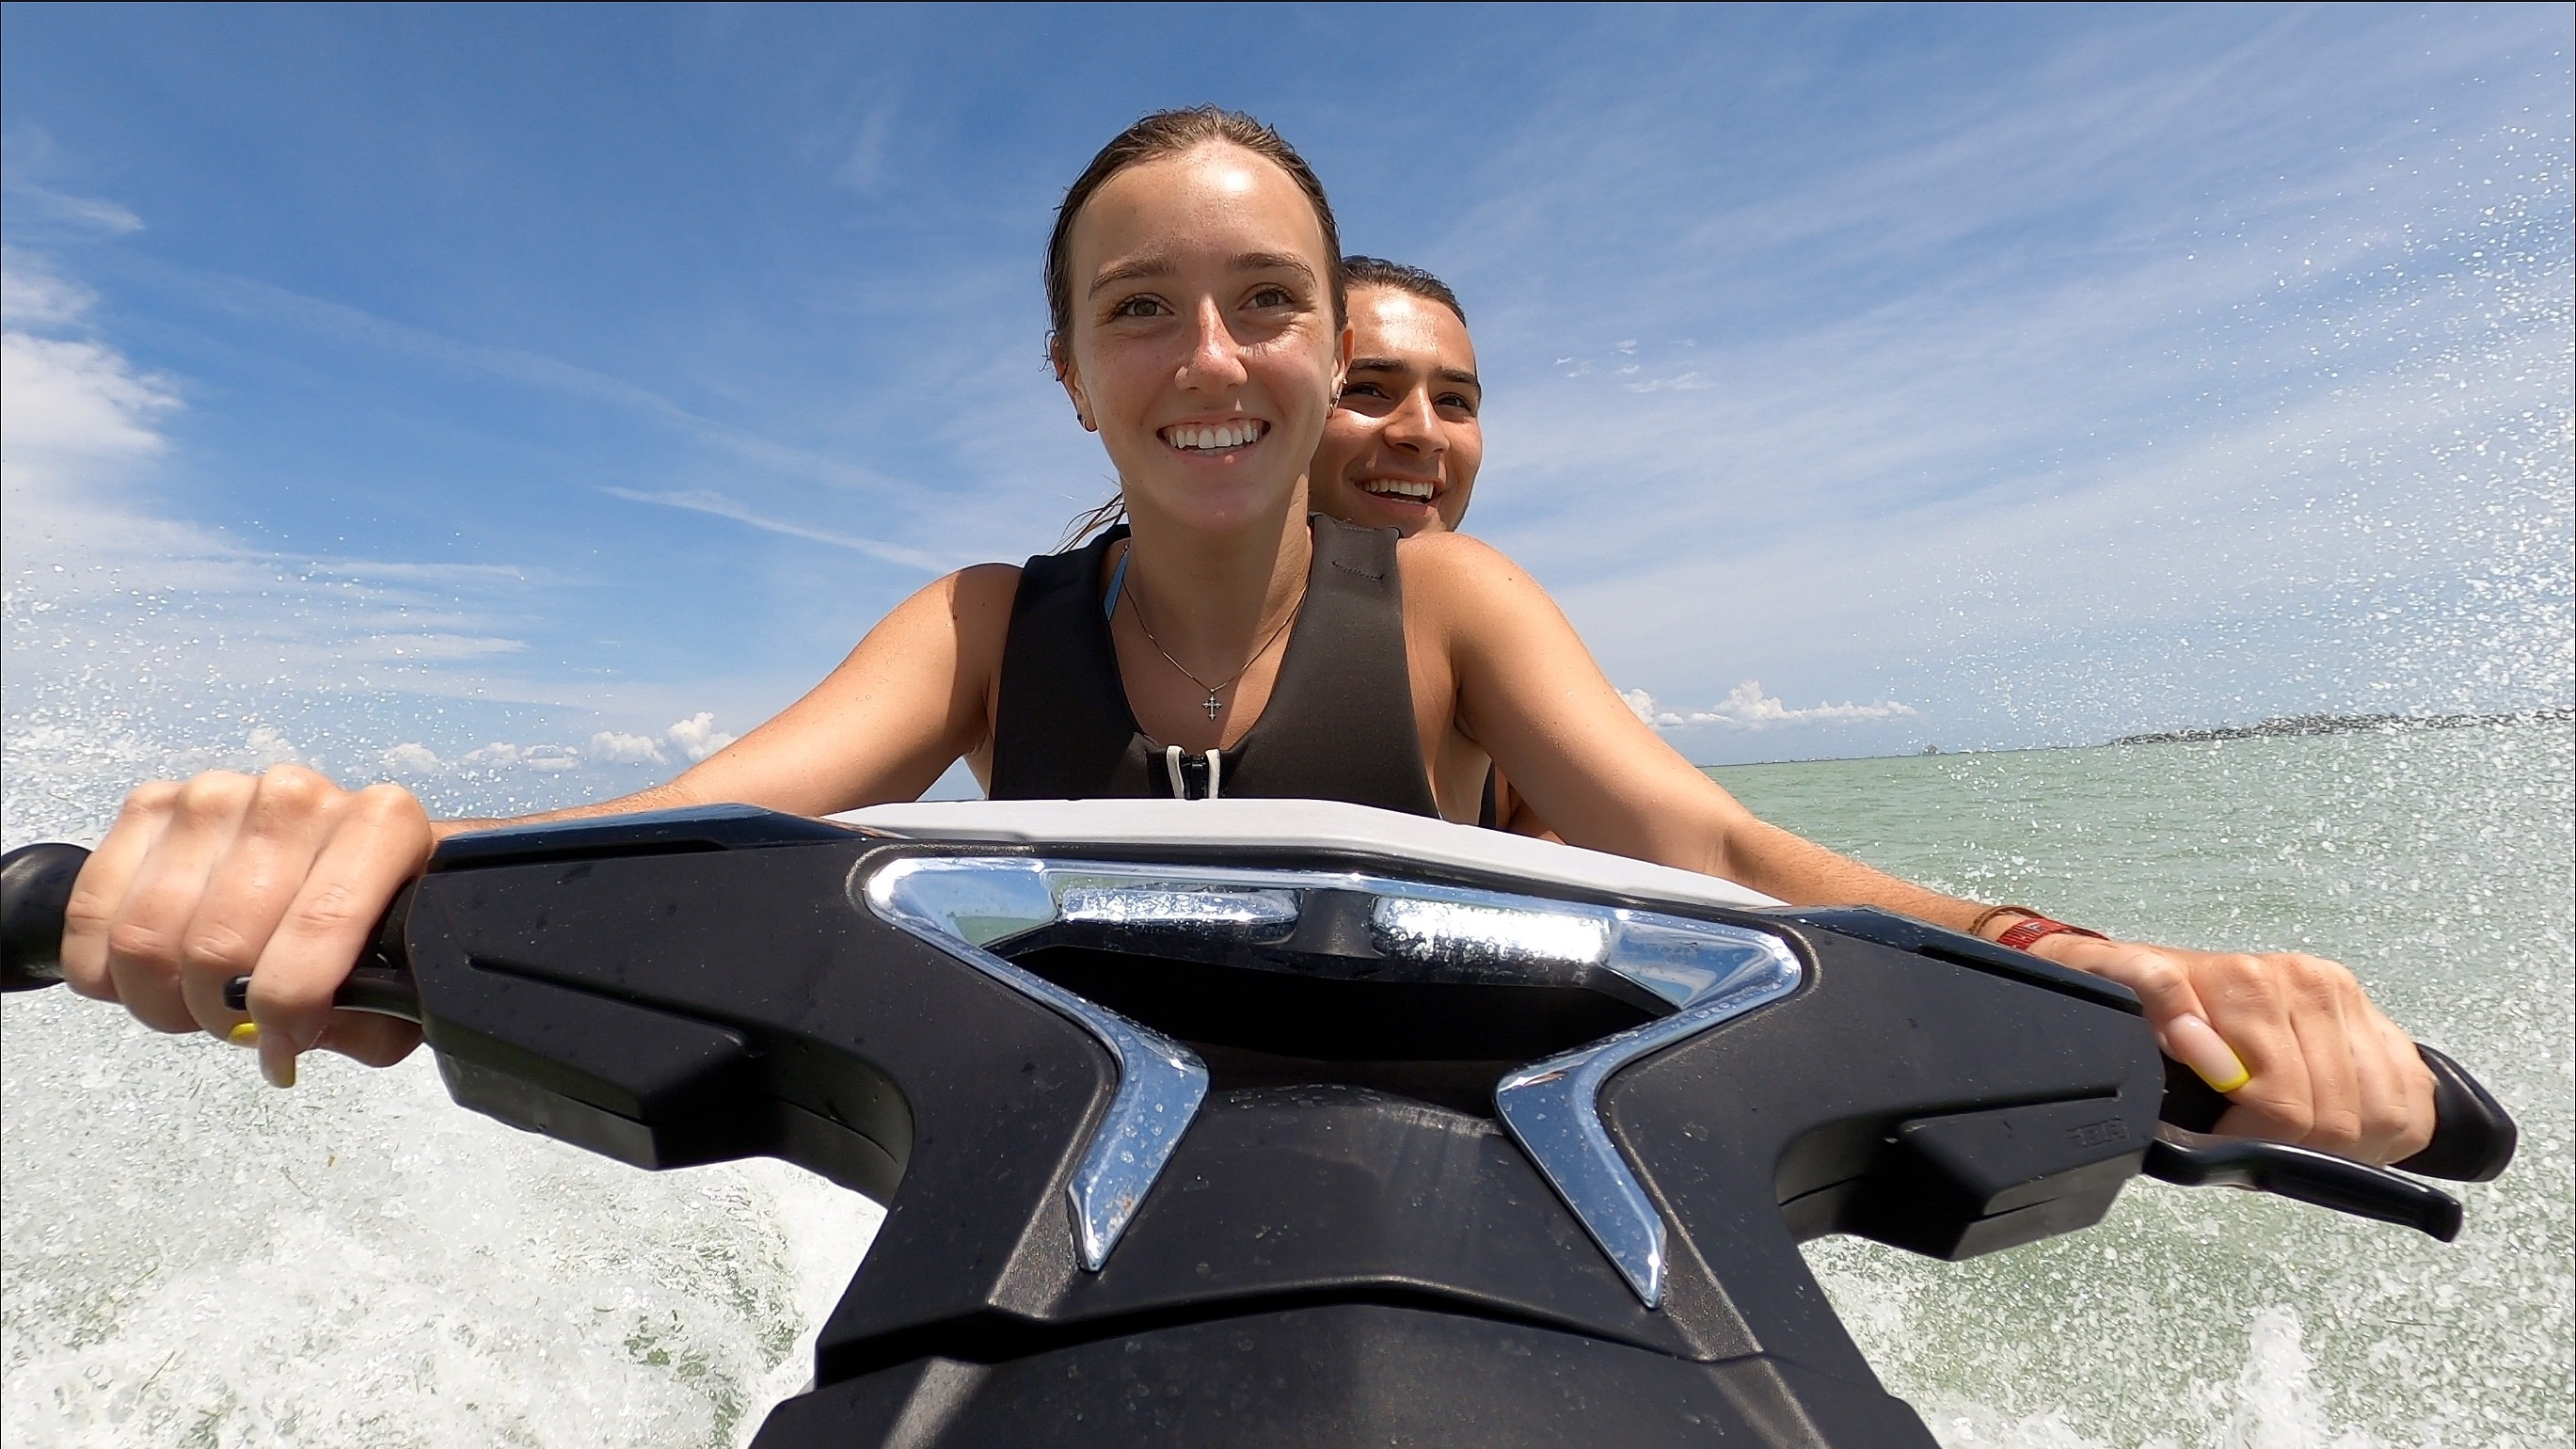 2 people riding a Sea-Doo